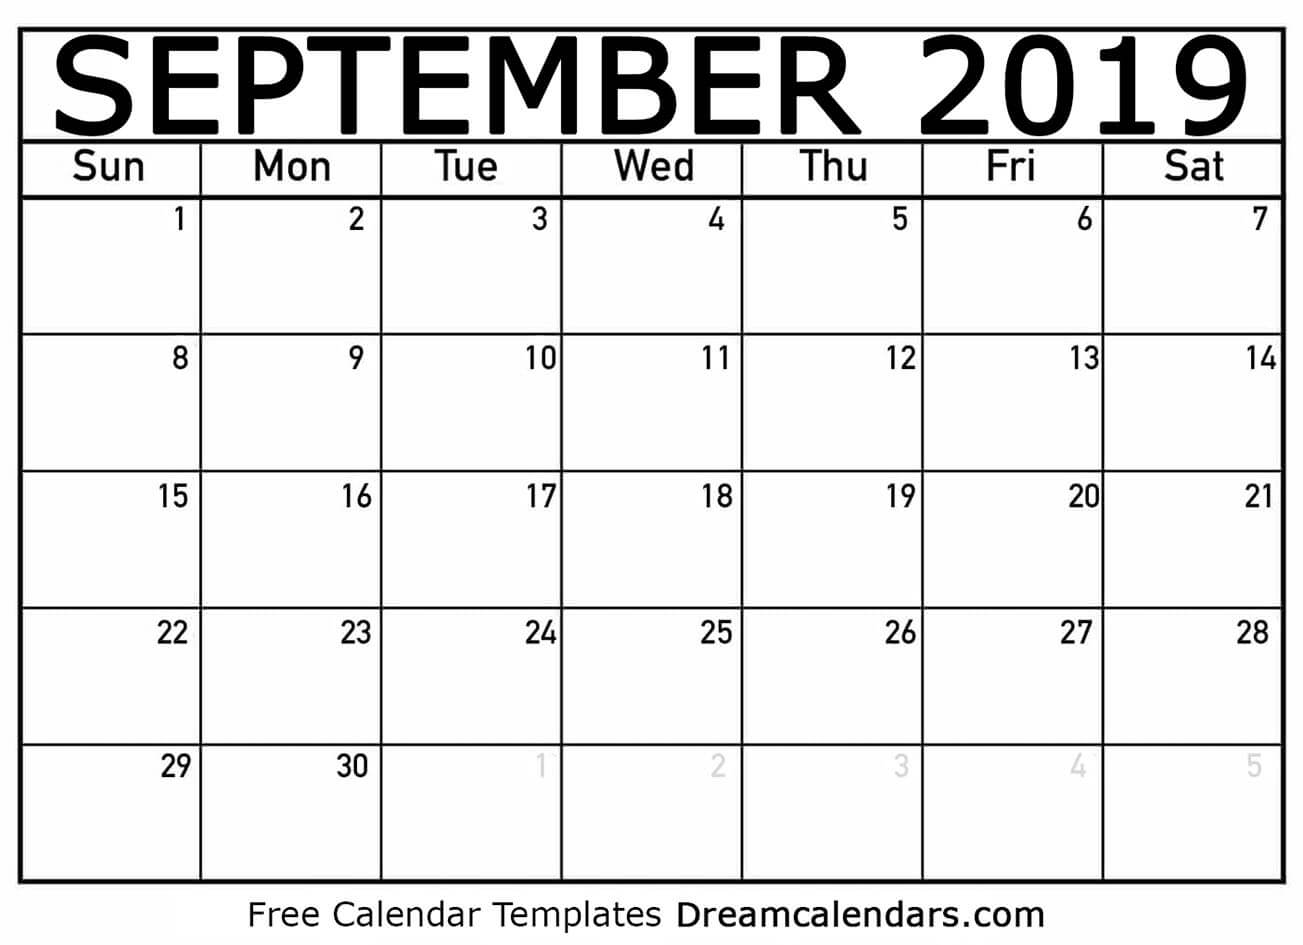 photo about Free Printable September Calendar known as Printable September 2019 Calendar